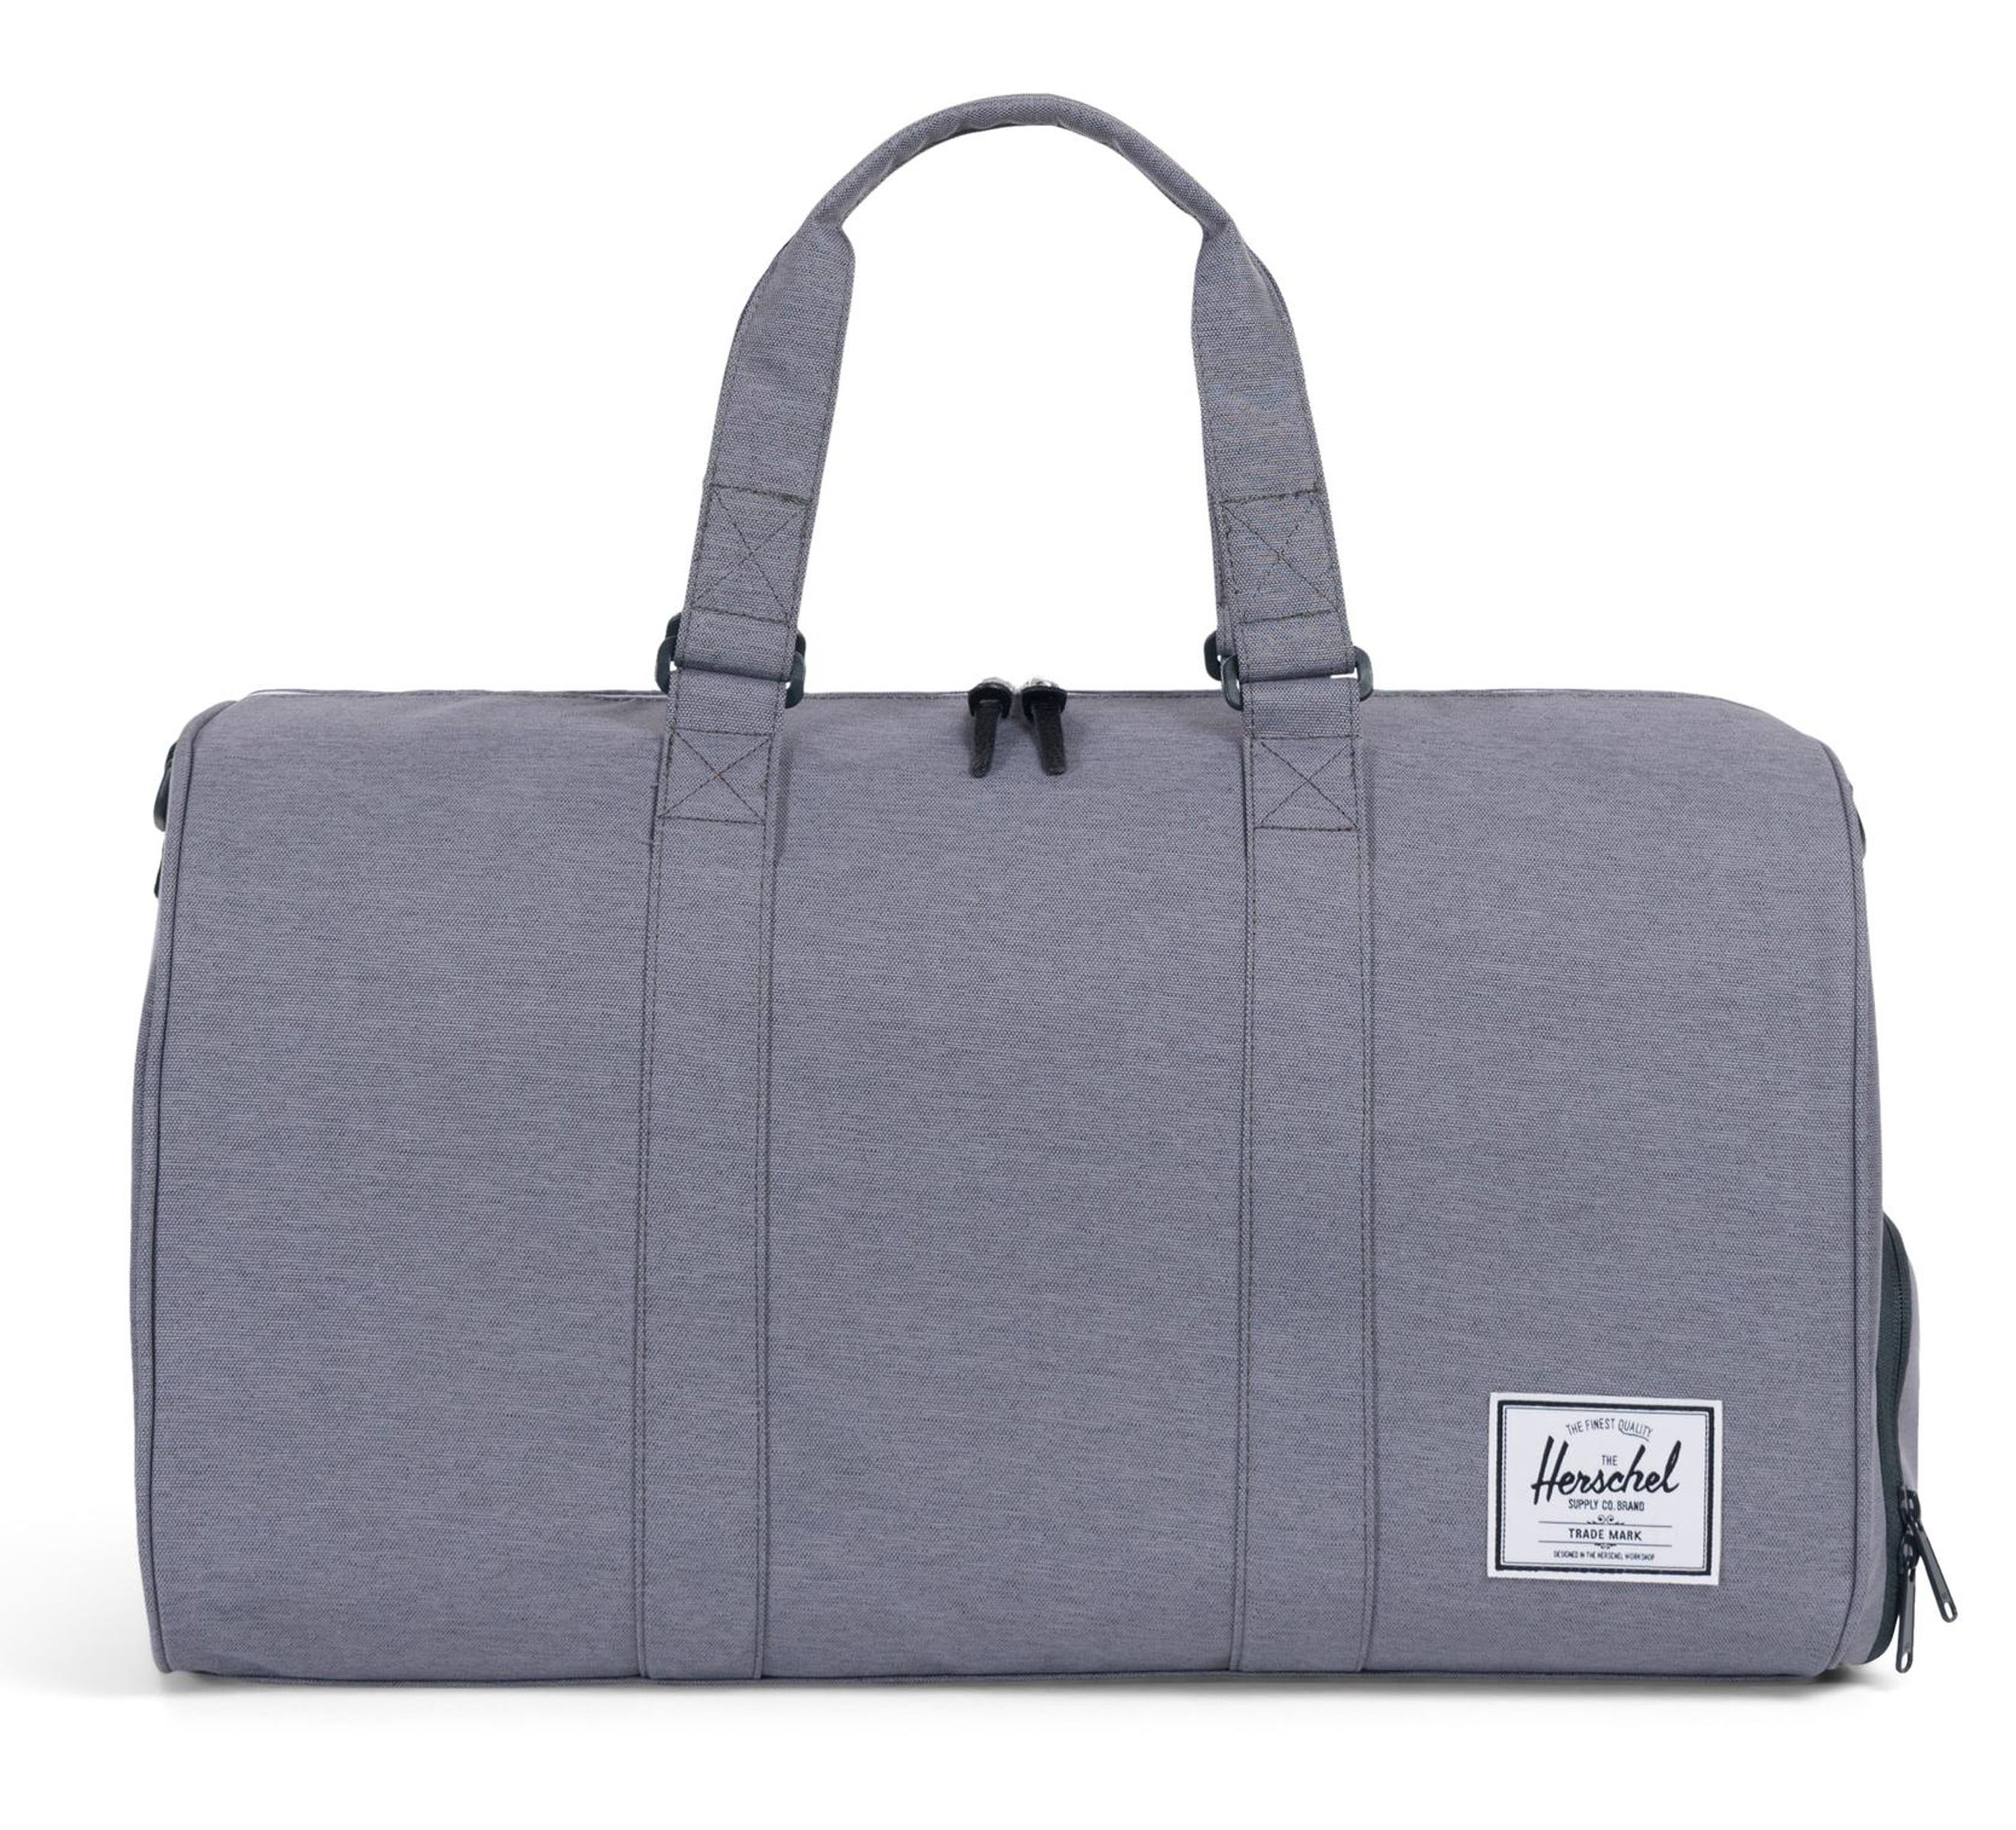 f978d52a20 15 Best Gym Bags for Women 2019 - Top Gym Duffel Bags